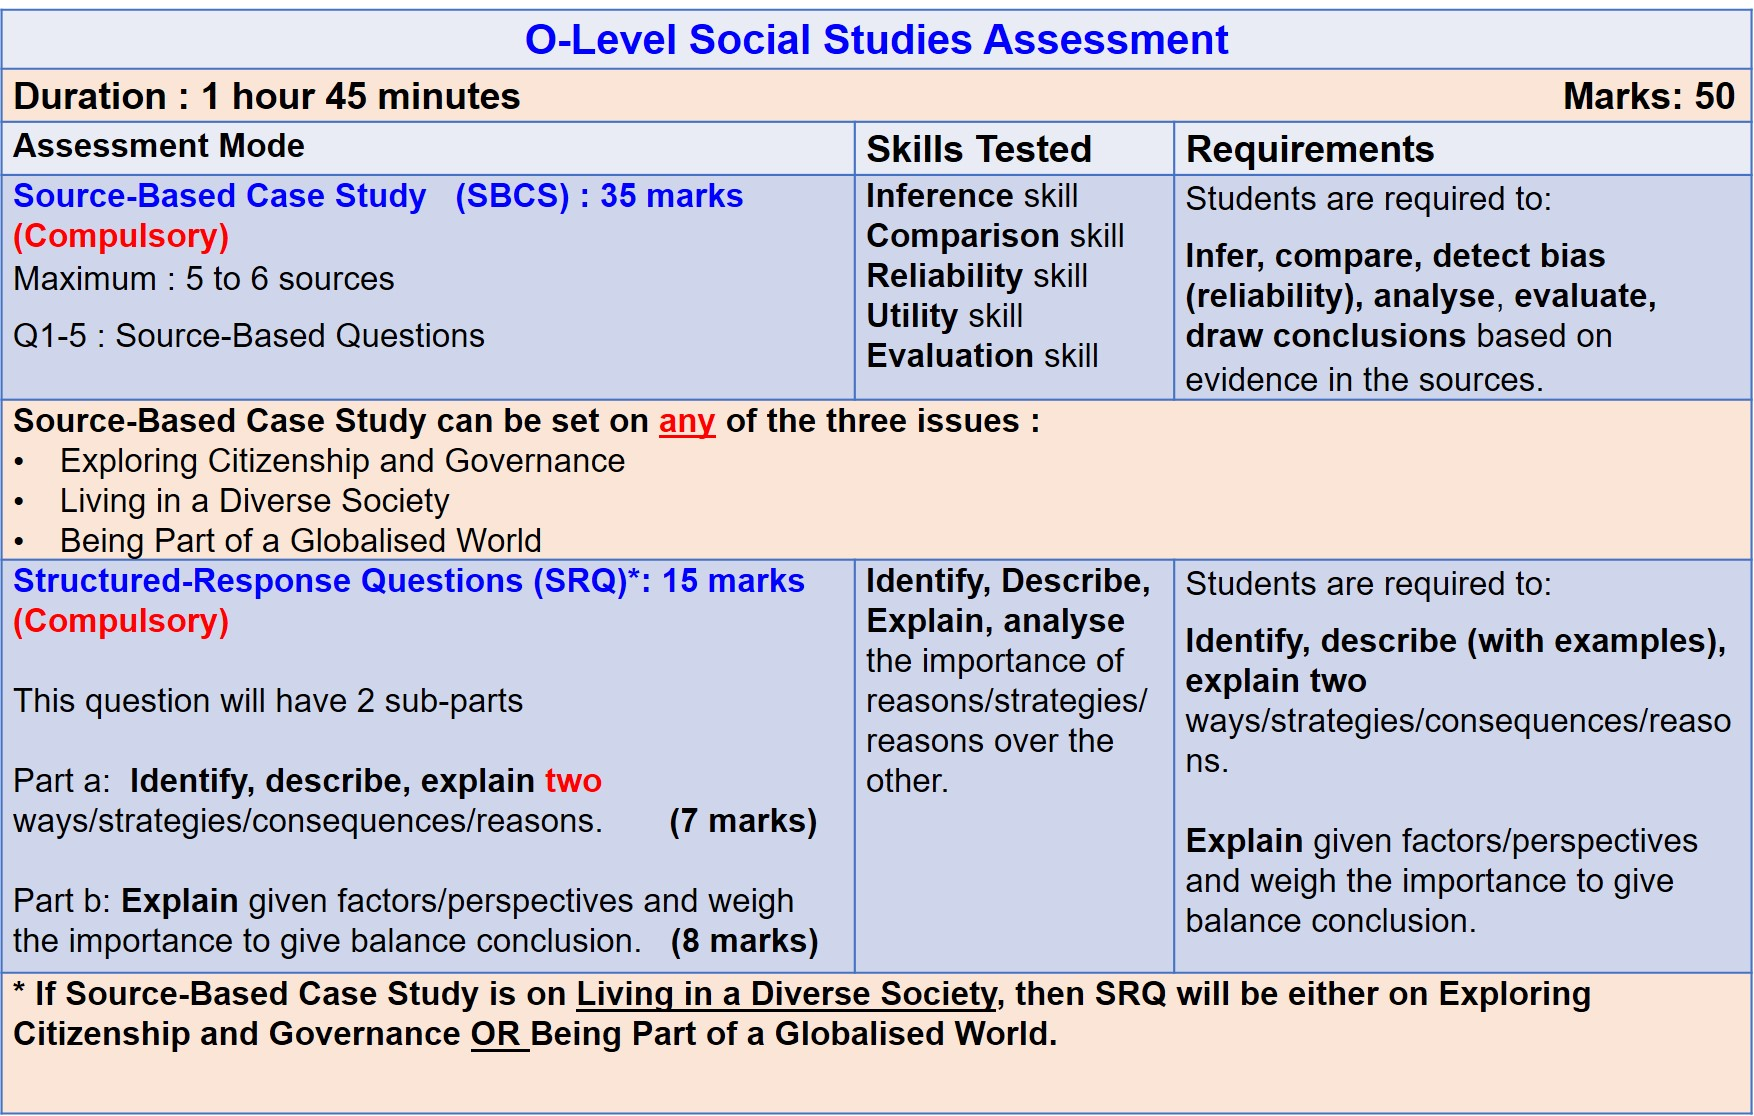 o-level social studies assessment